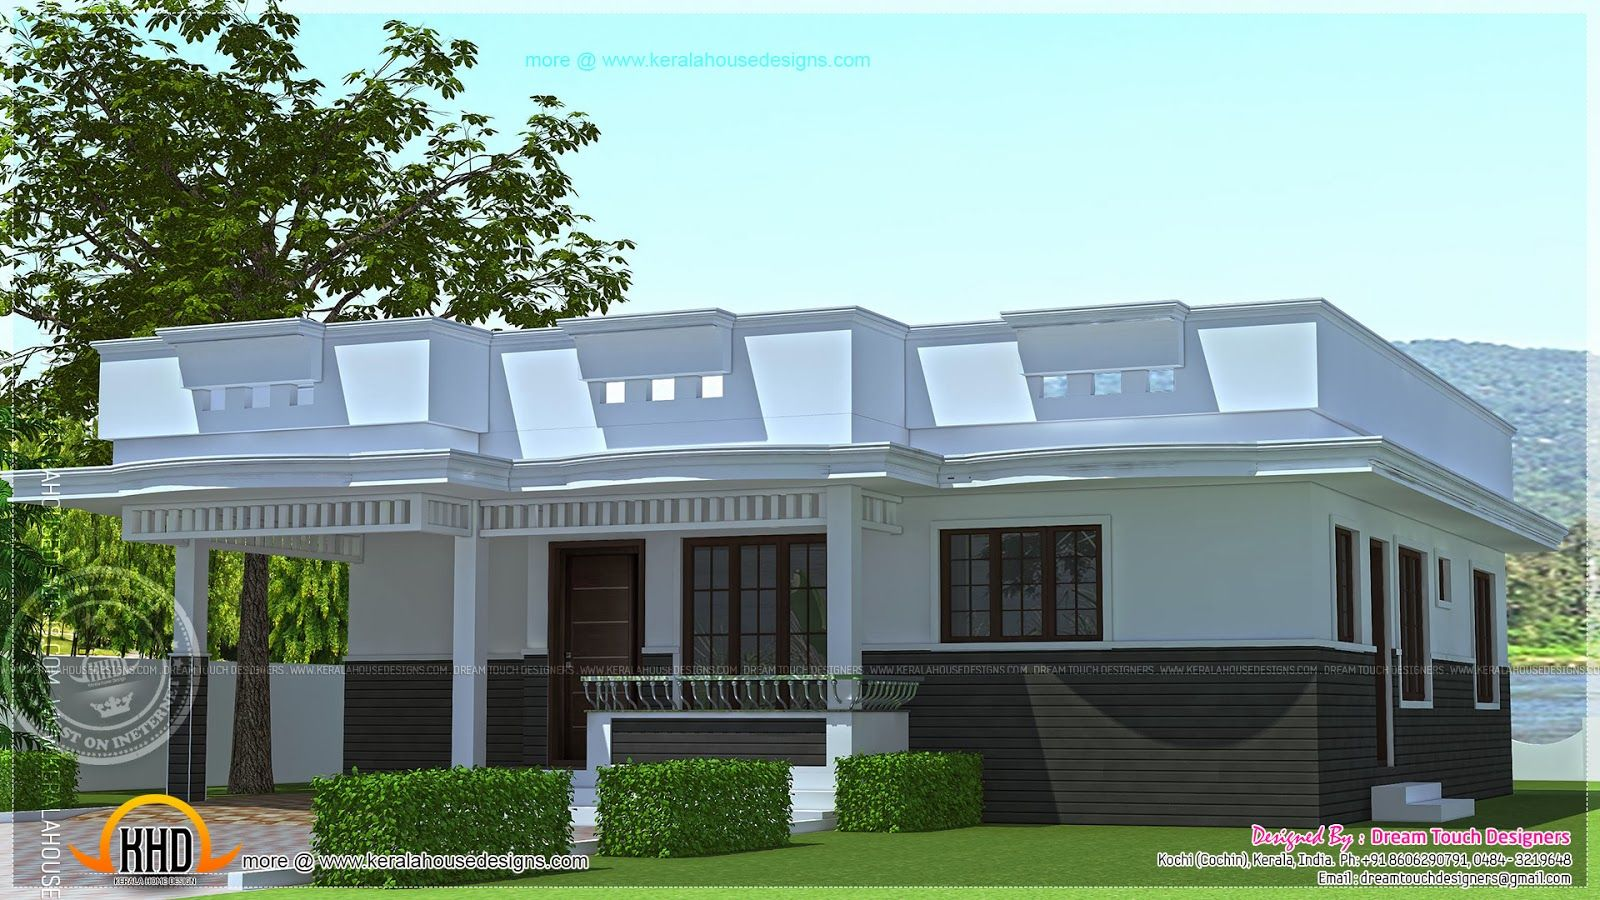 flat roof small house designs house design ideas kerala style single floor house plan square meters - Single Floor House Plans